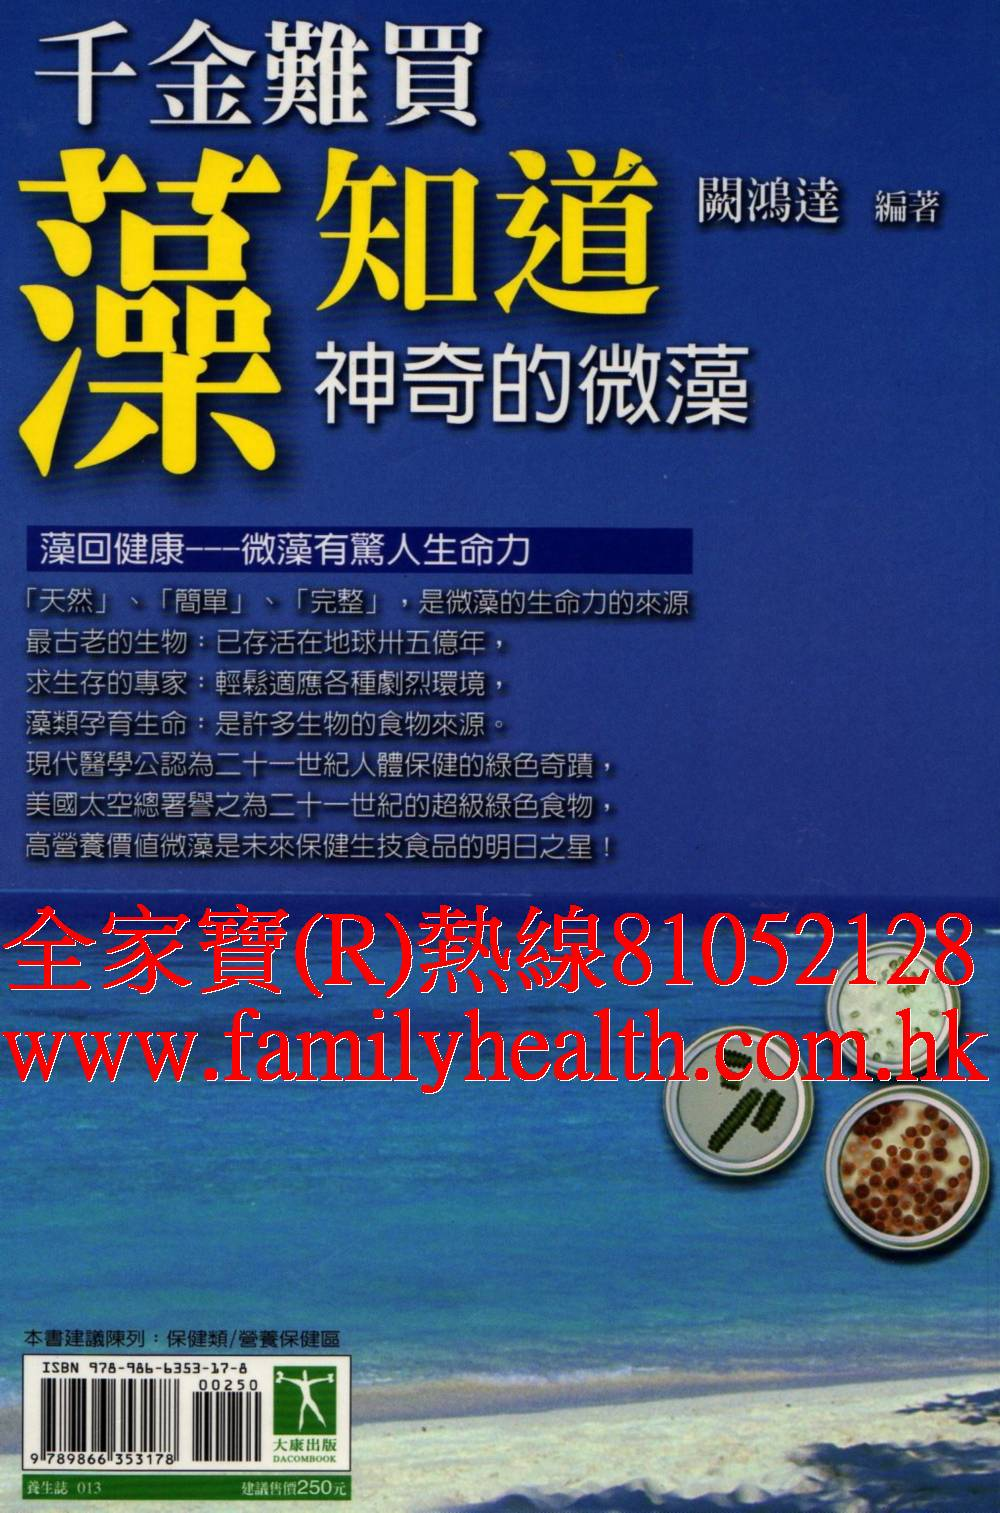 http://www.familyhealth.com.hk/files/full/933_1.jpg